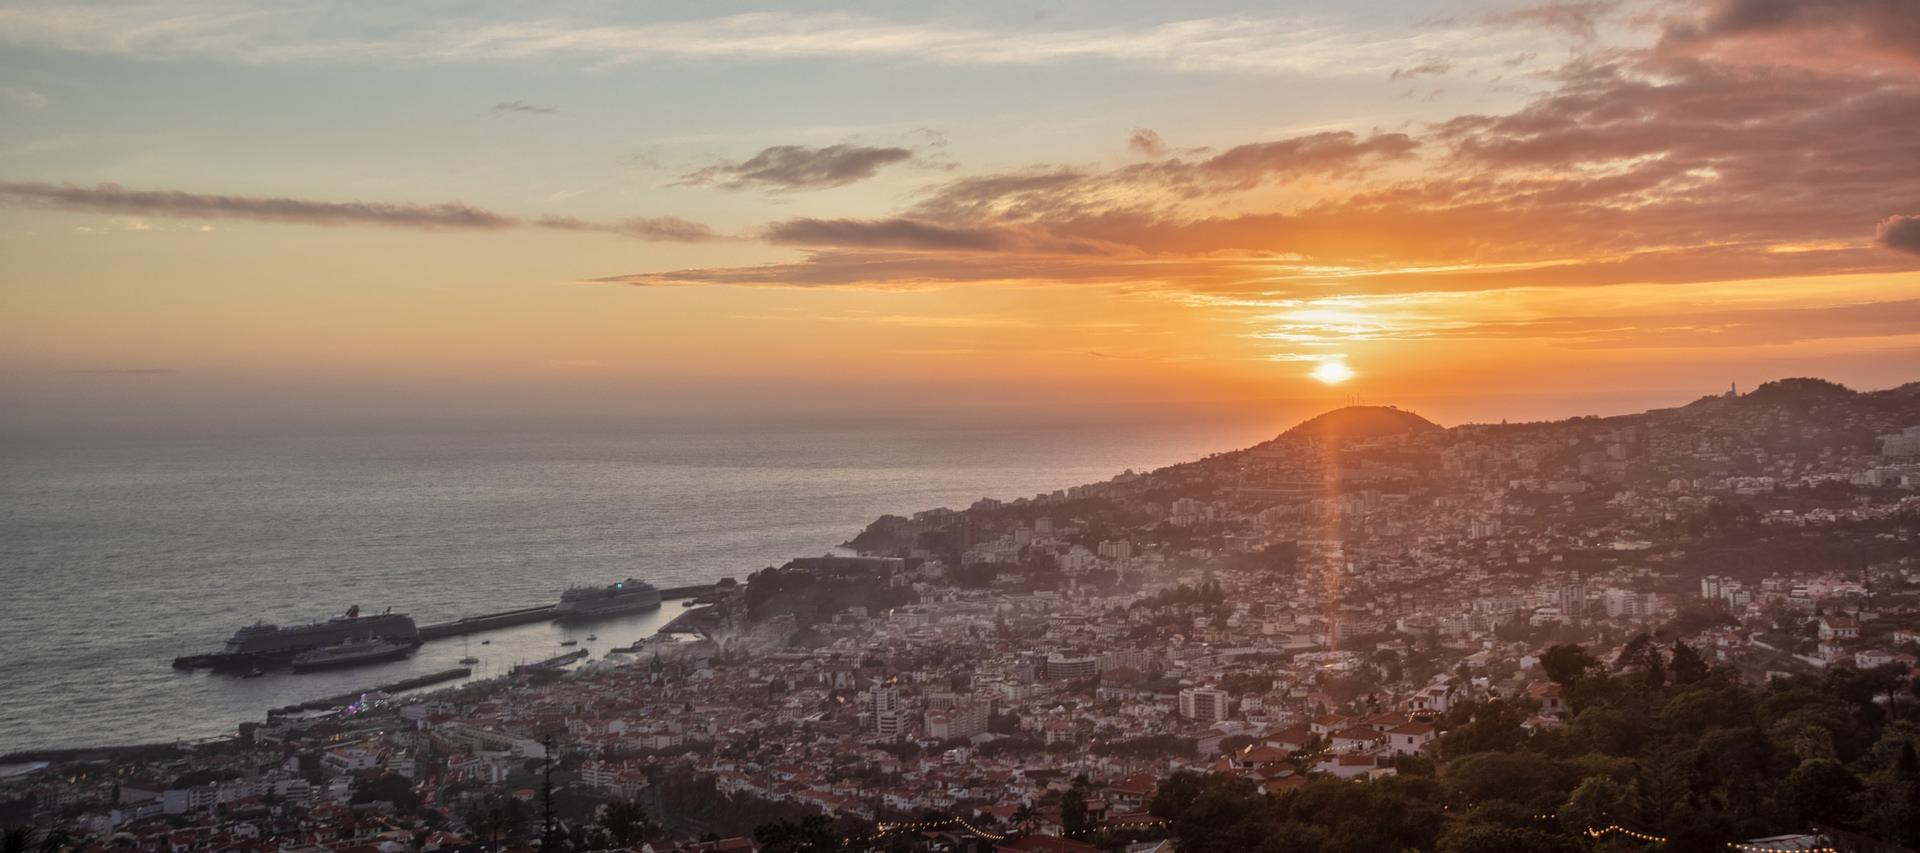 Sunset over Funchal, Madeira